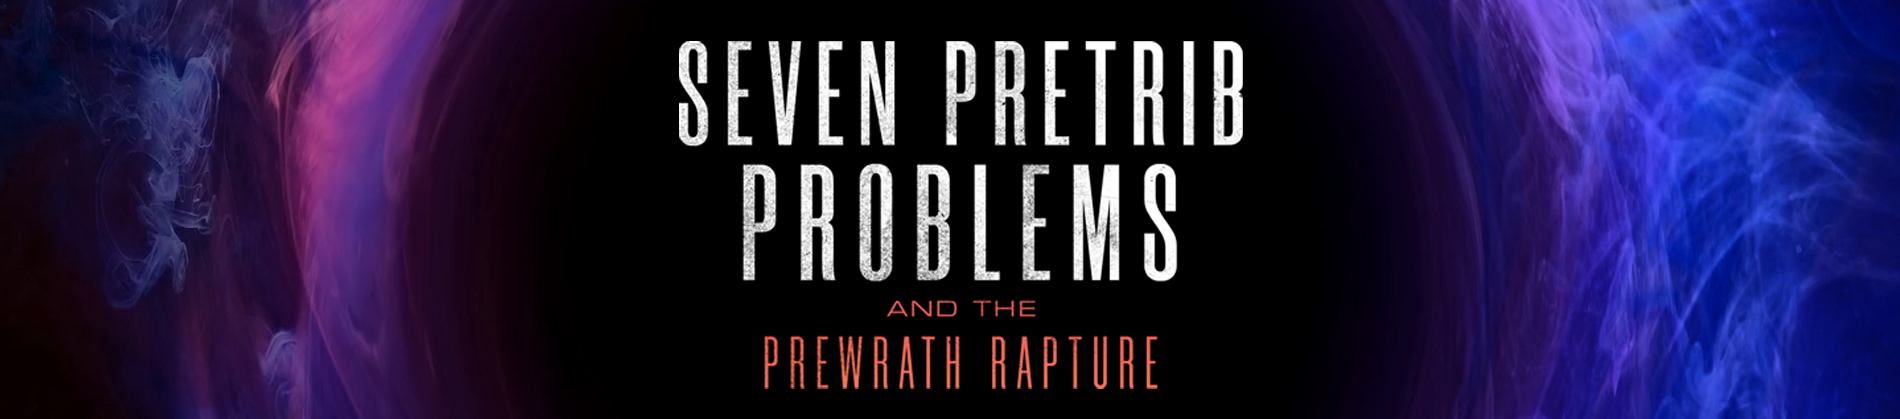 7 Pretrib Problems and the Prewrath Rapture